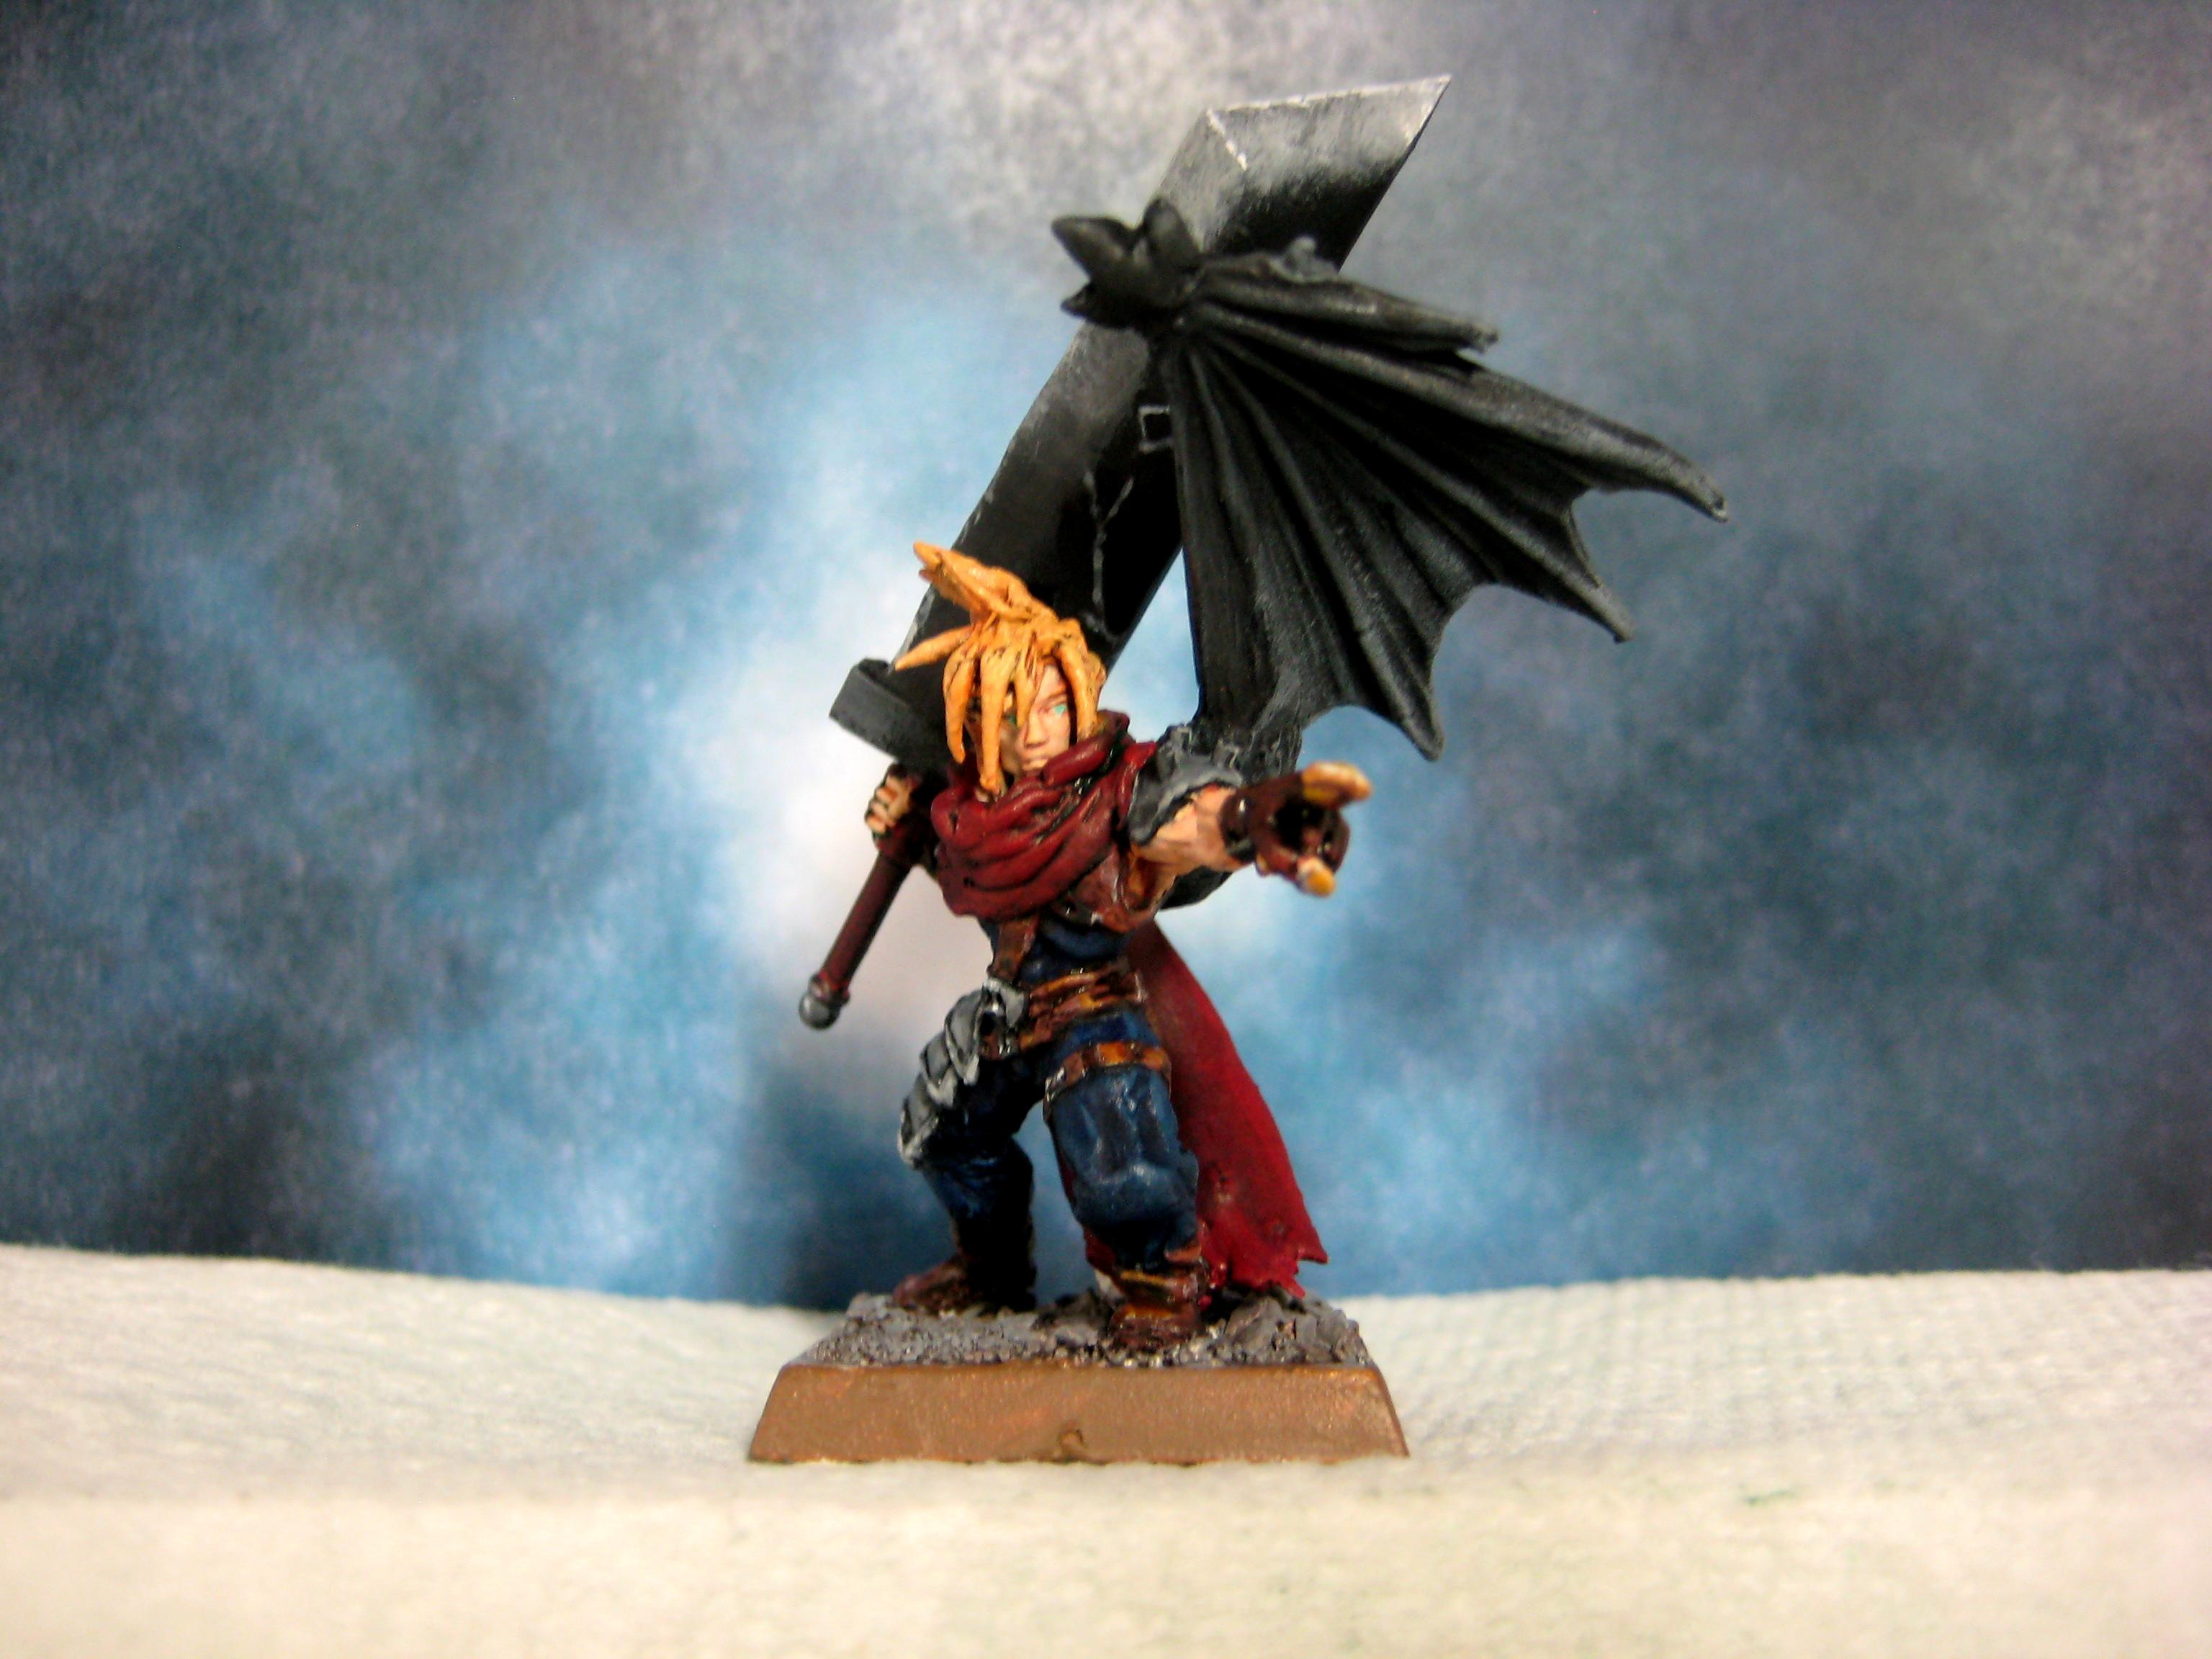 Cloud, Cloud Strife, Conversion, Warhammer Fantasy, Warhammer Quest